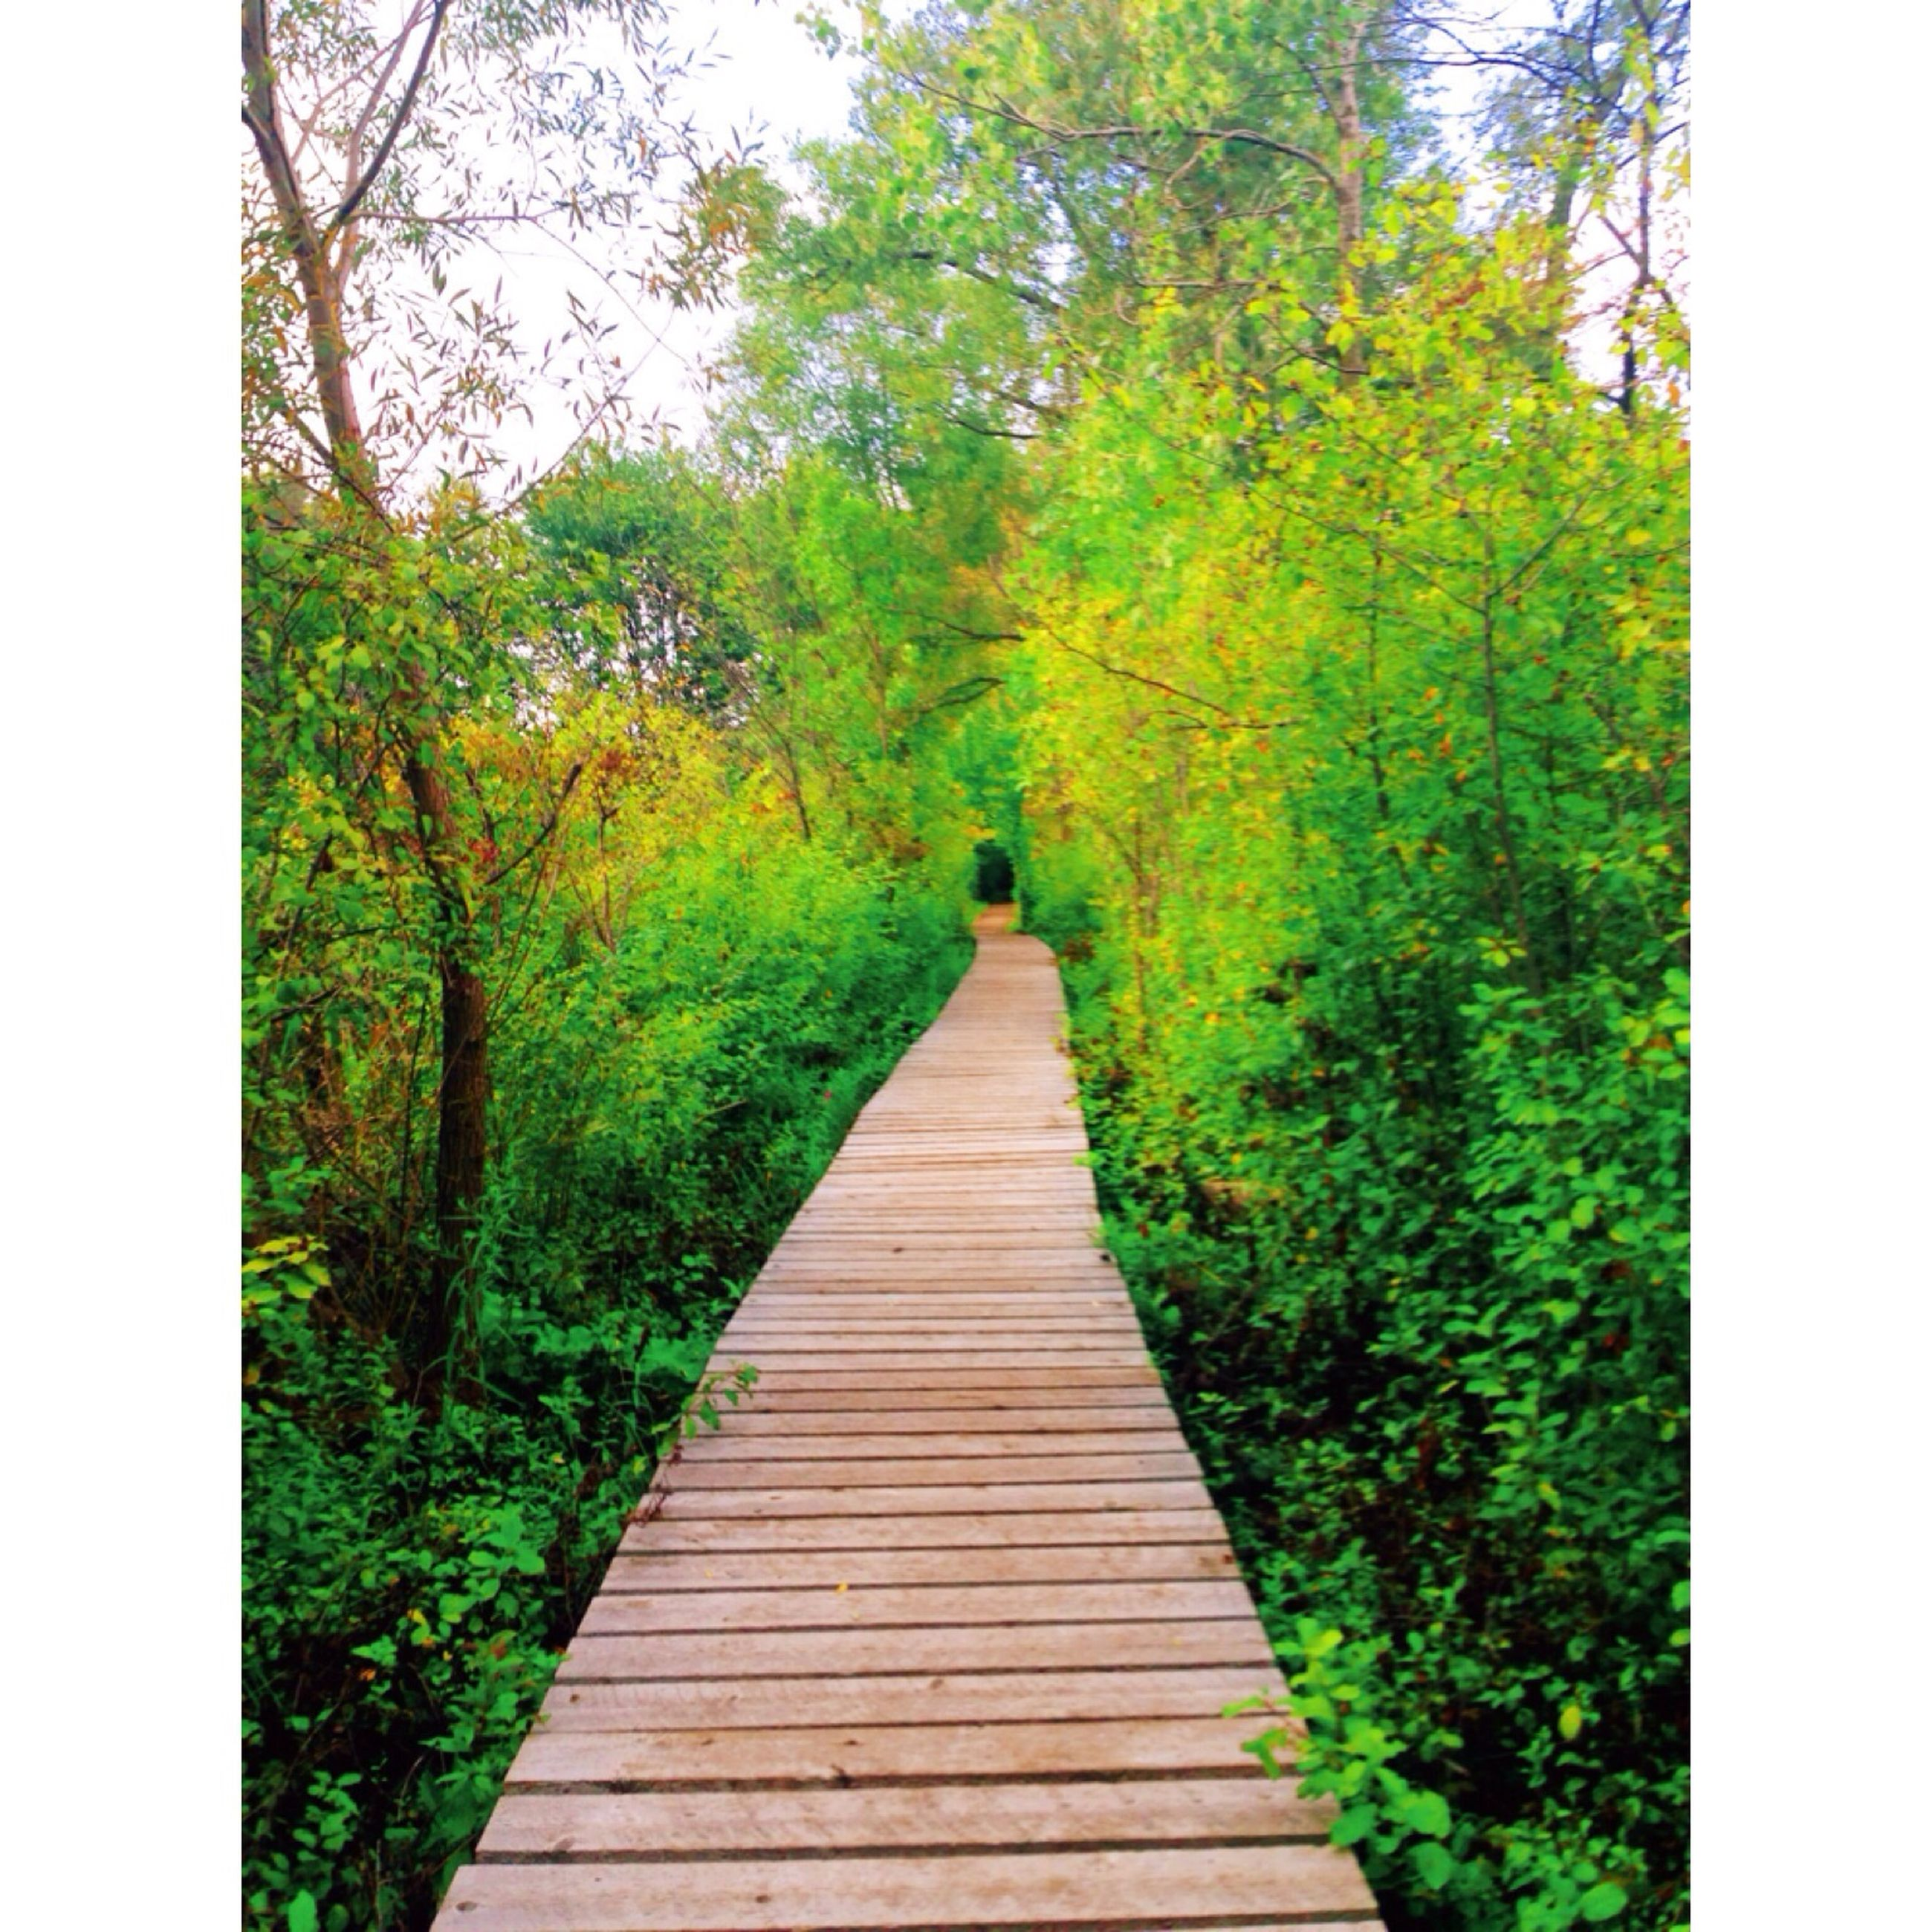 tree, the way forward, tranquility, boardwalk, diminishing perspective, growth, wood - material, nature, tranquil scene, beauty in nature, footbridge, forest, green color, railing, narrow, vanishing point, scenics, branch, transfer print, wood